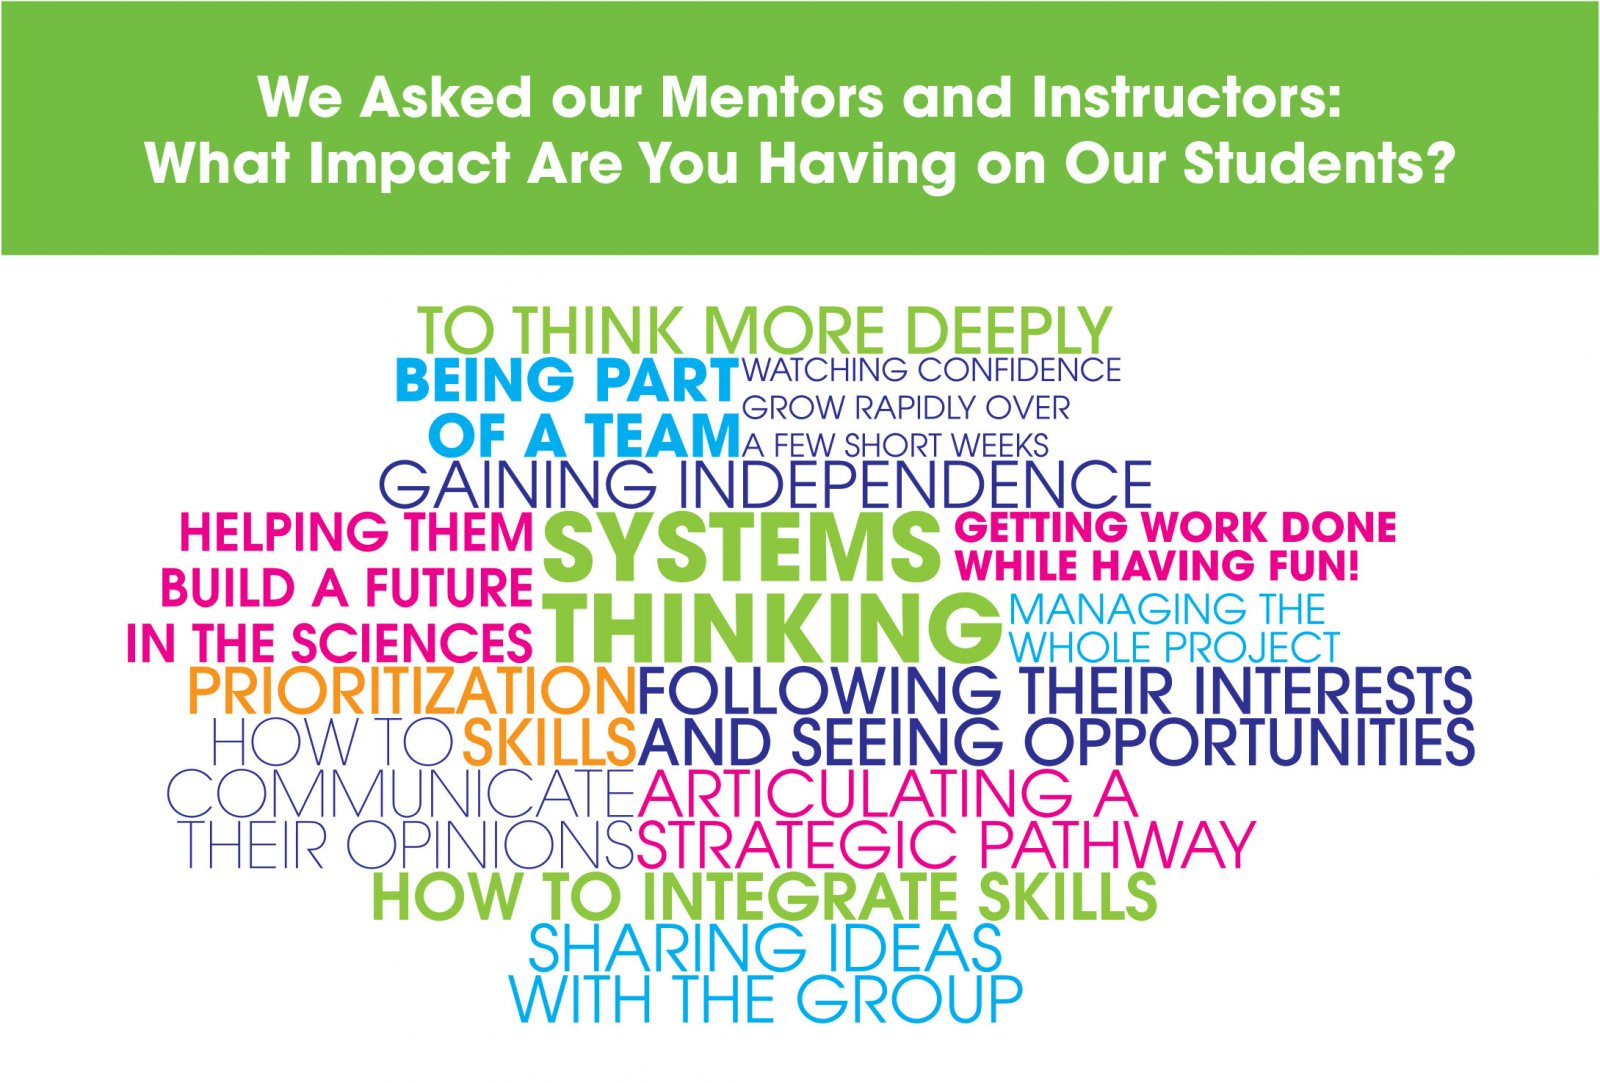 What impact are we having on students?